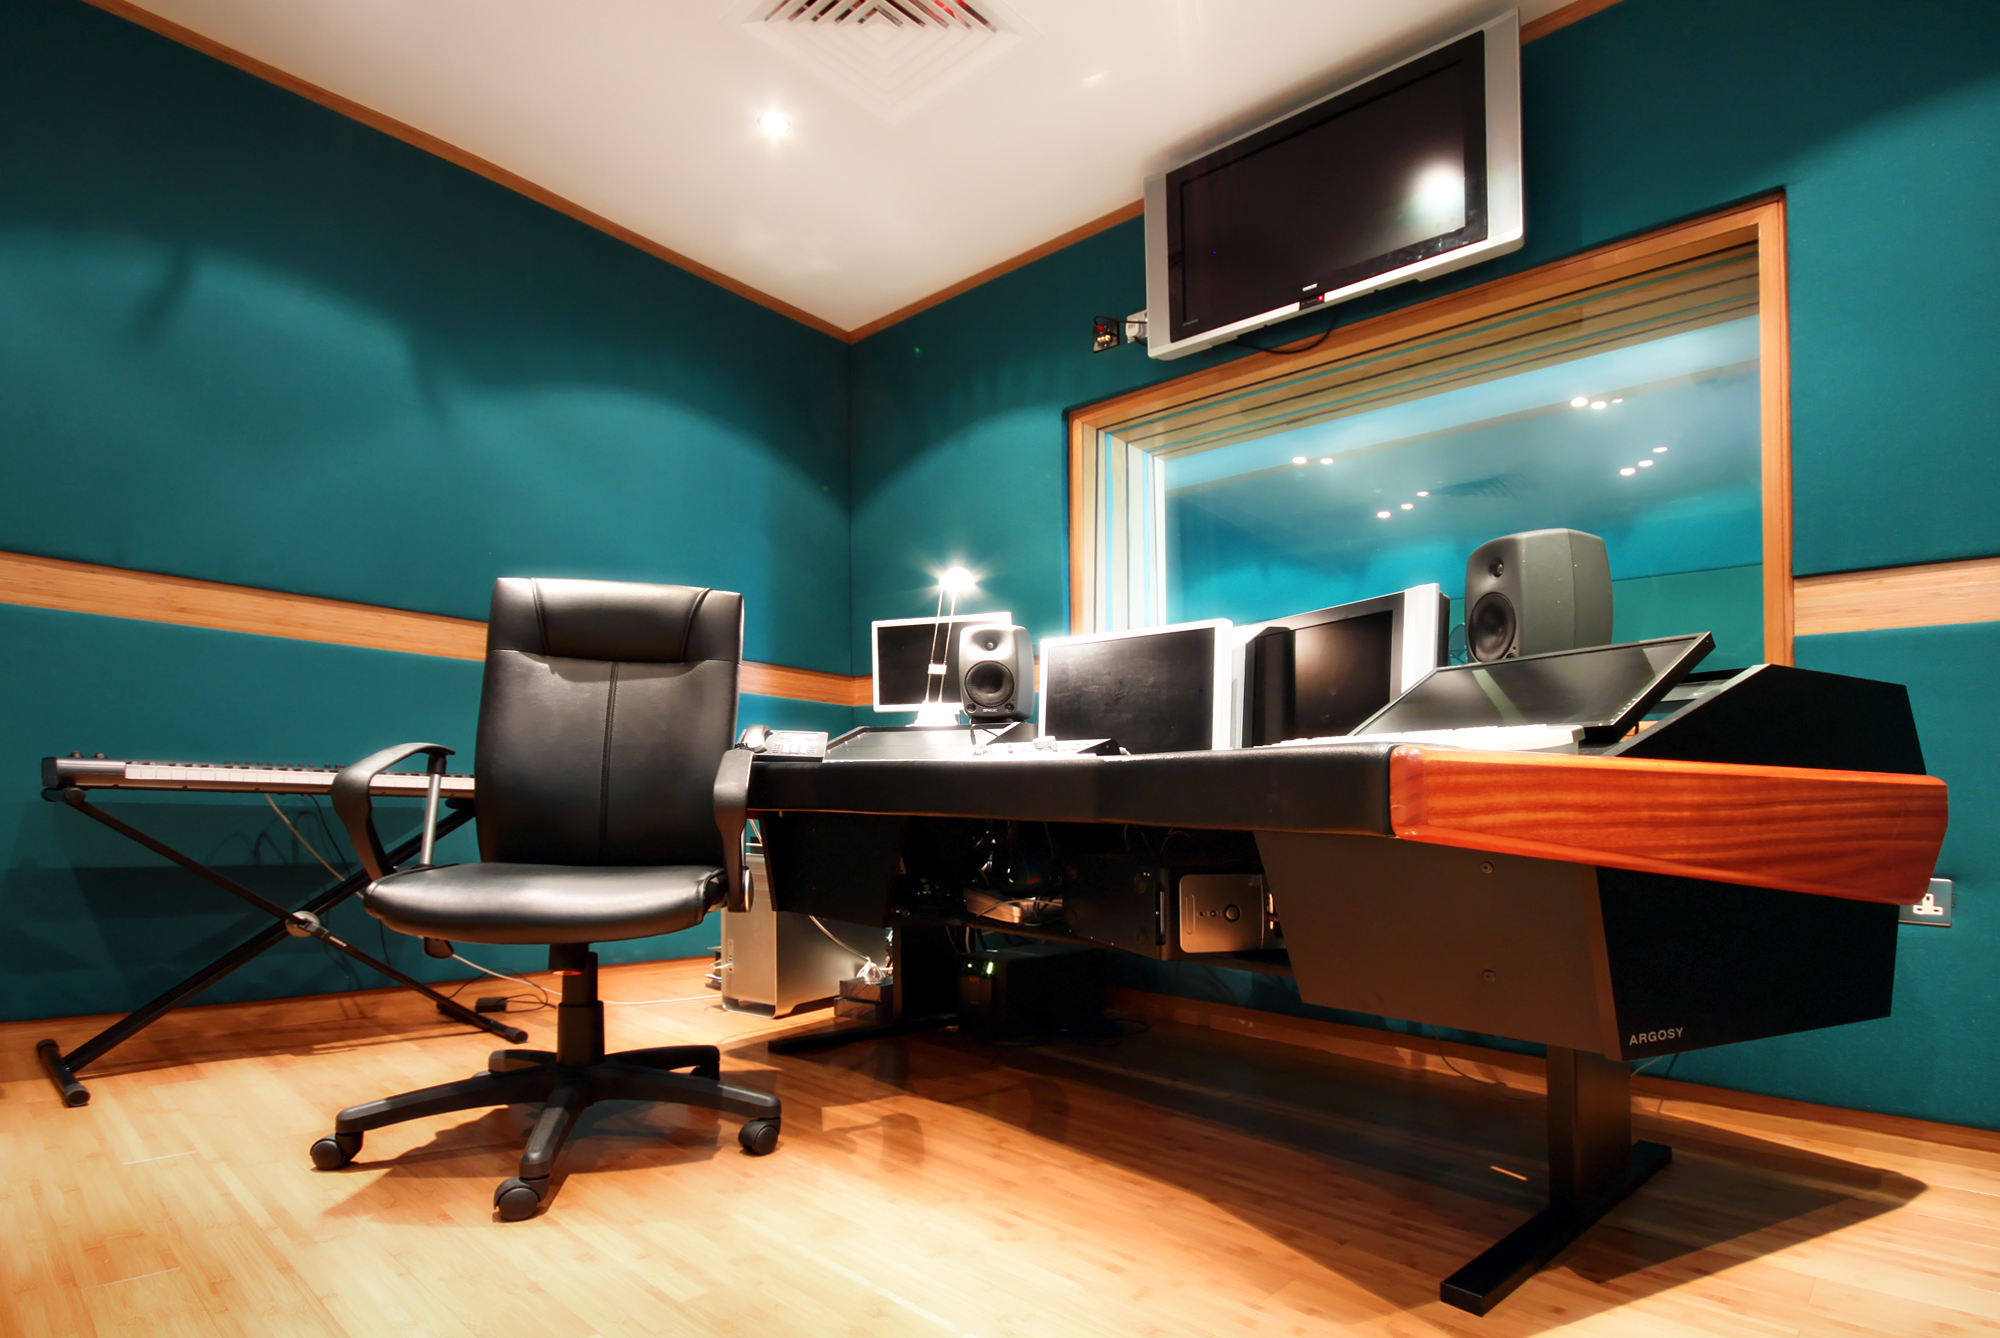 The leading audio production company in the Middle East | BKP Media Group | Dubai